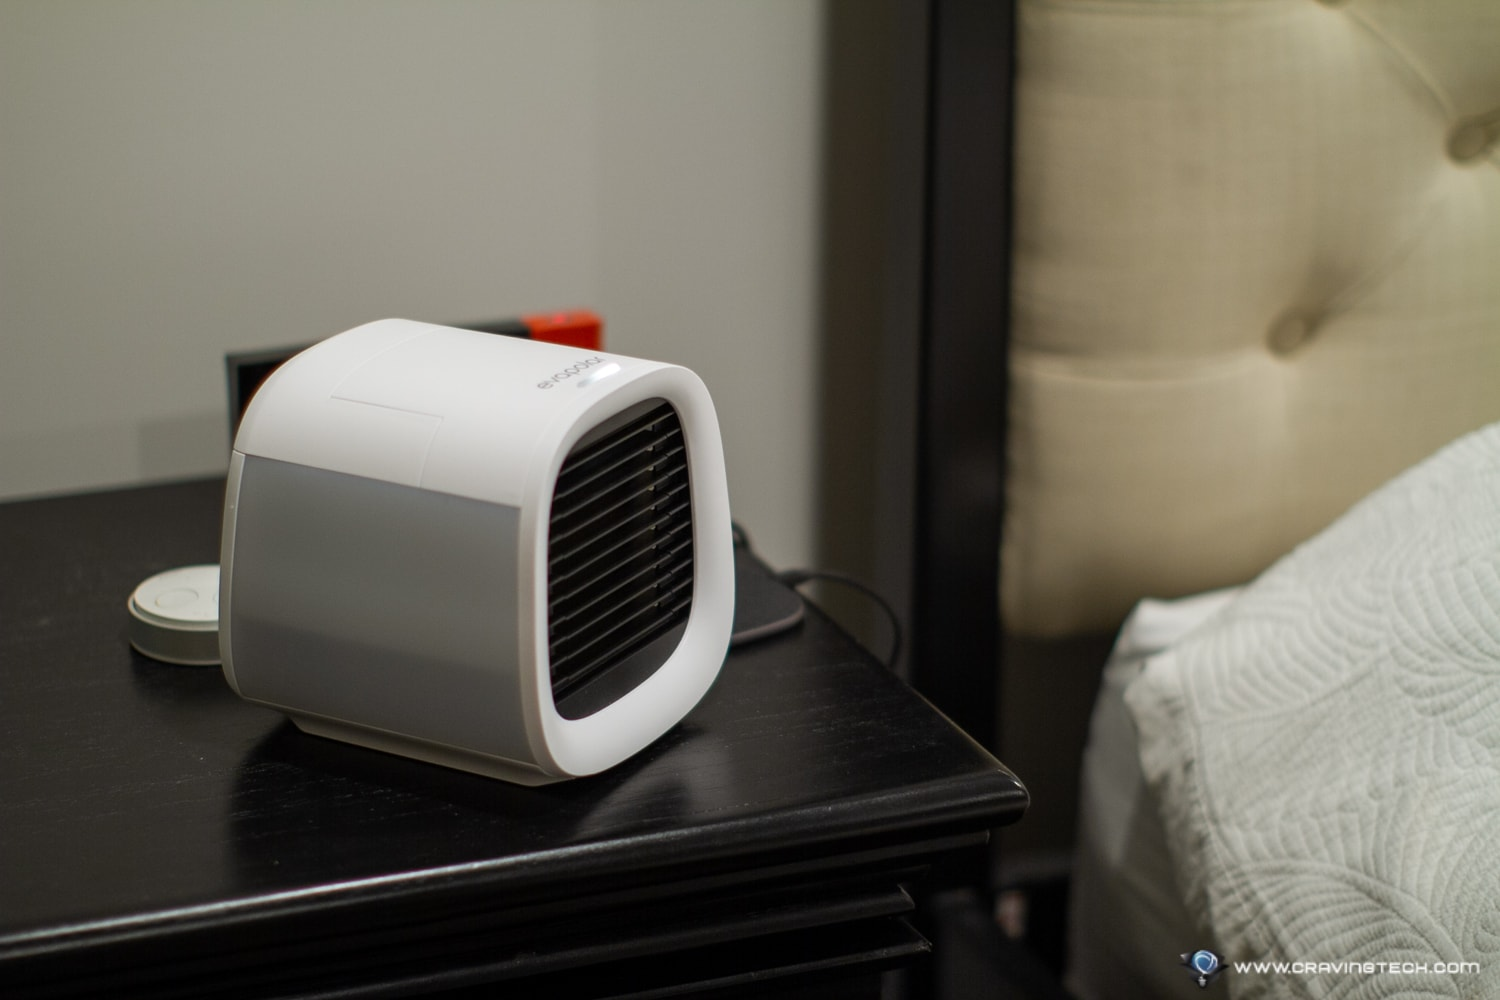 Your personal, portable Air Conditioner – Evapolar evaCHILL Review